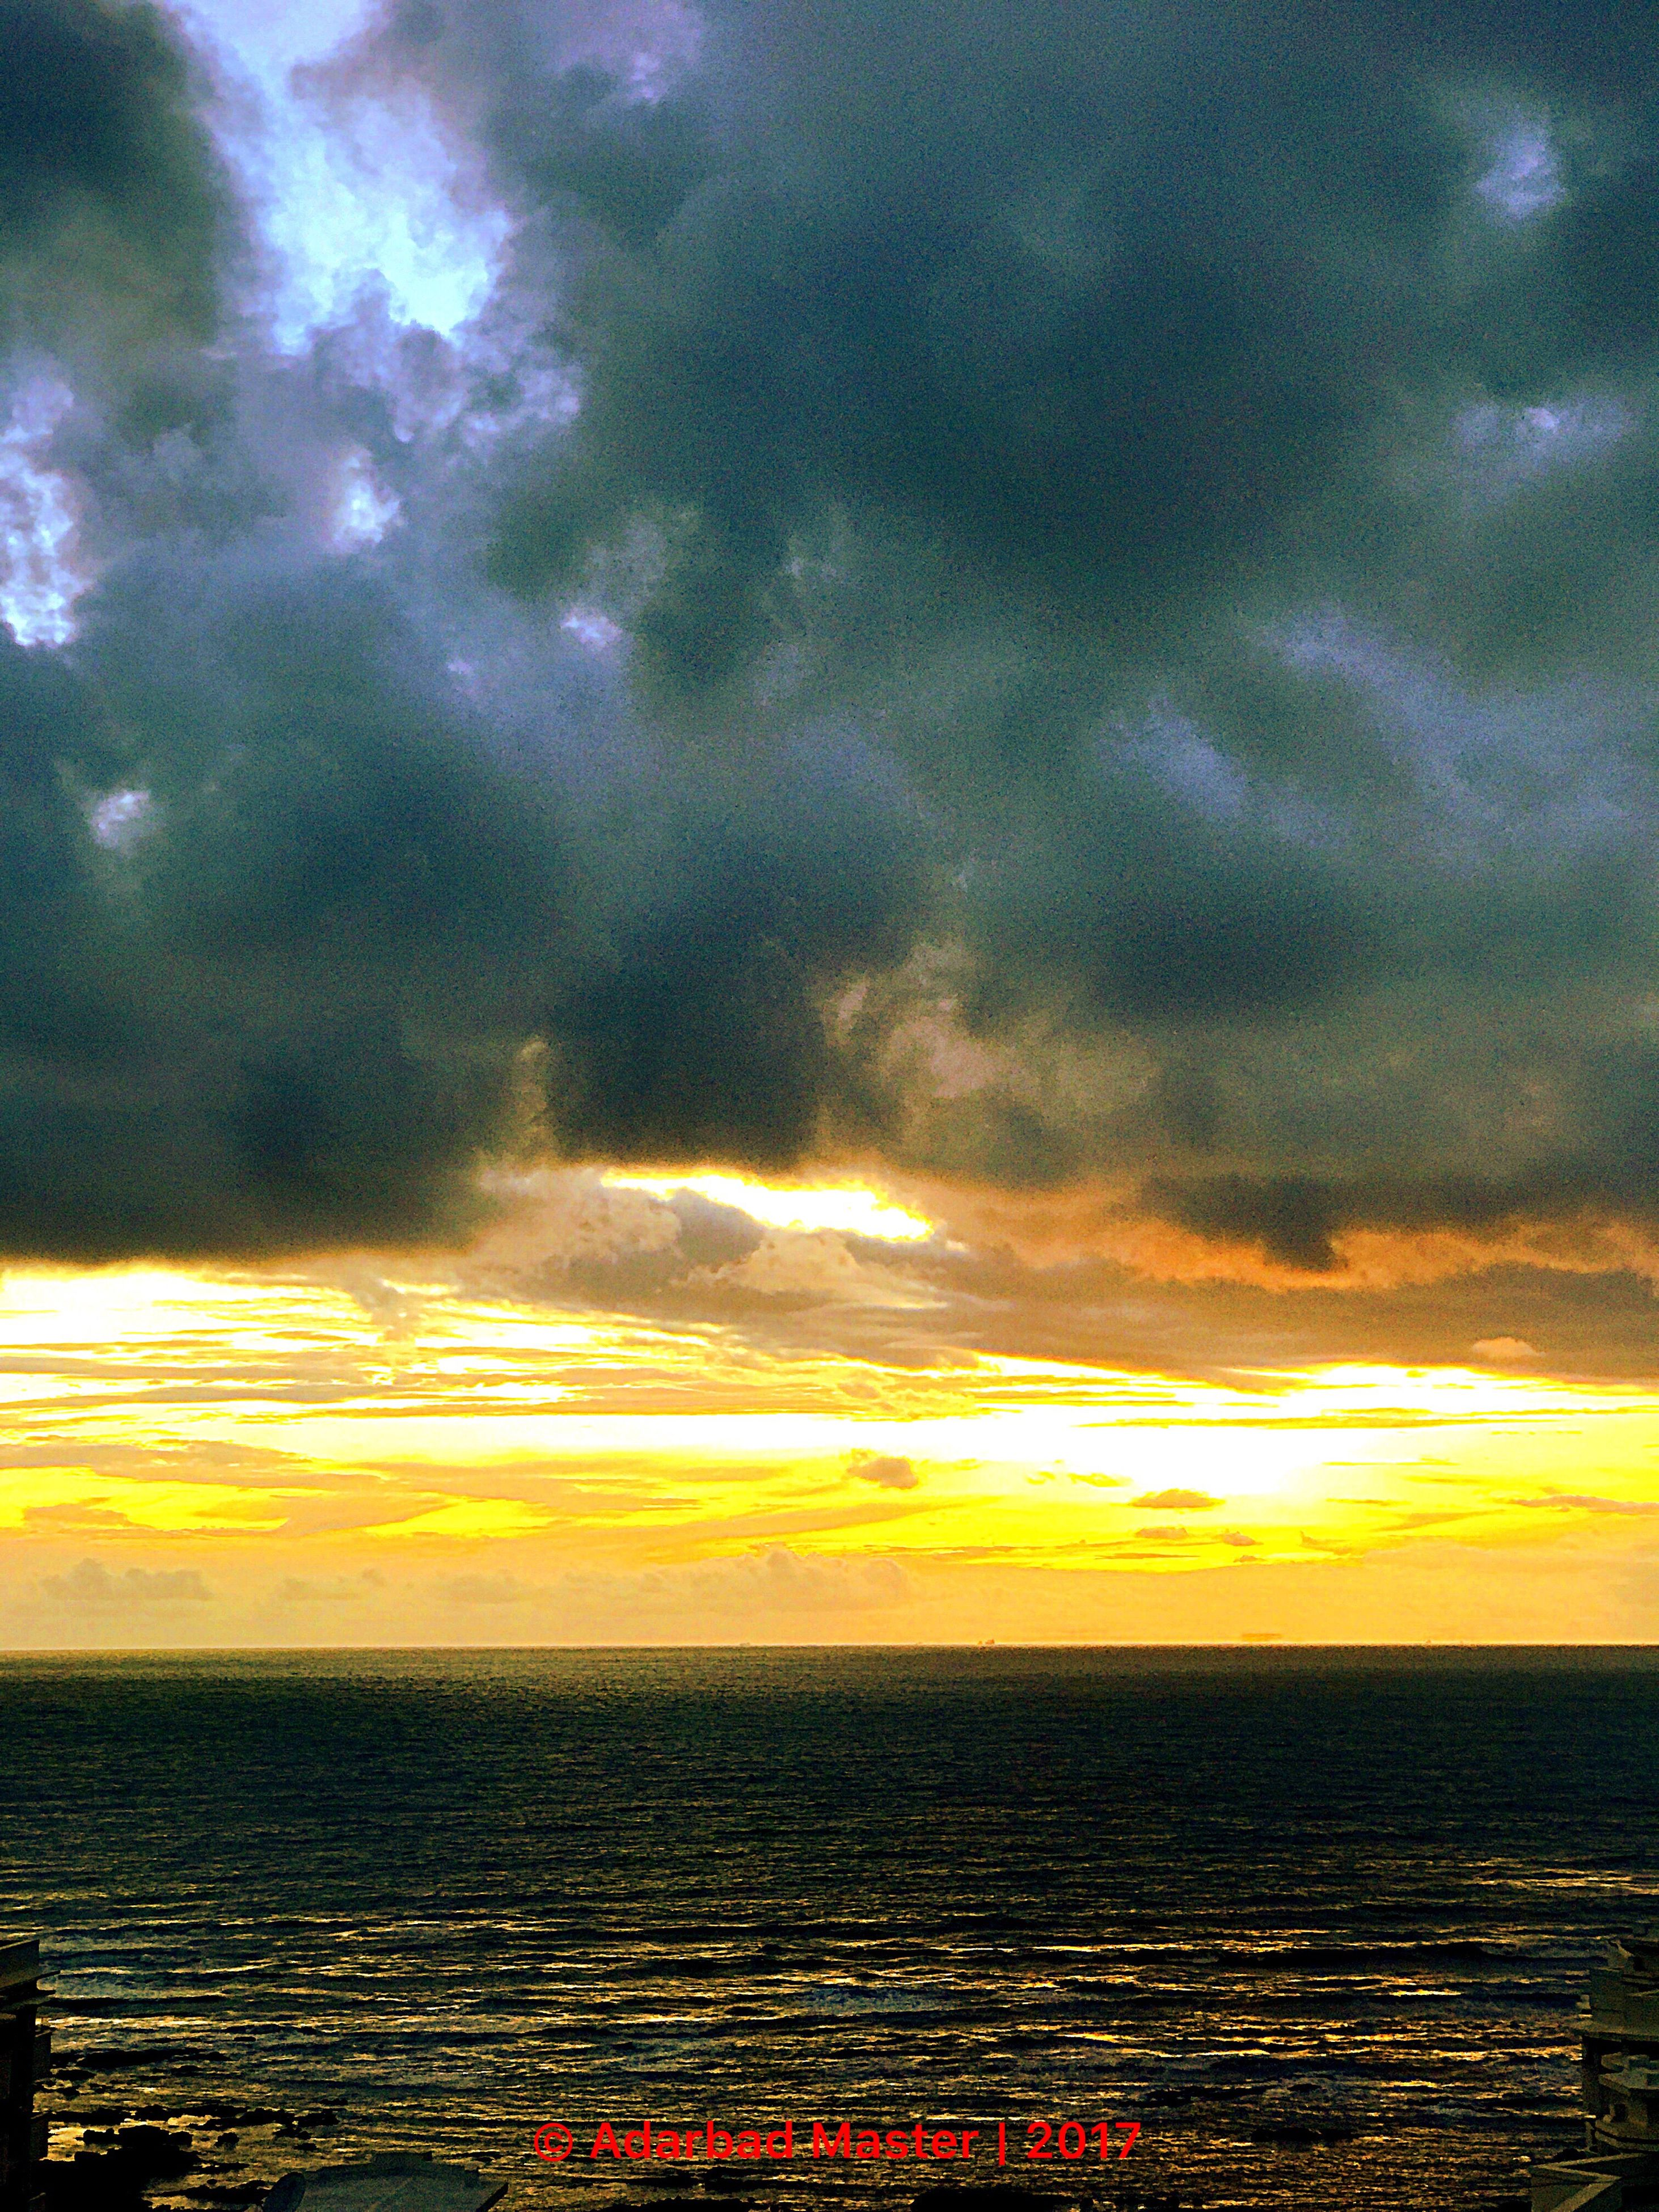 sky, cloud - sky, scenics, sunset, sea, horizon over water, beauty in nature, tranquility, nature, water, tranquil scene, outdoors, no people, yellow, day